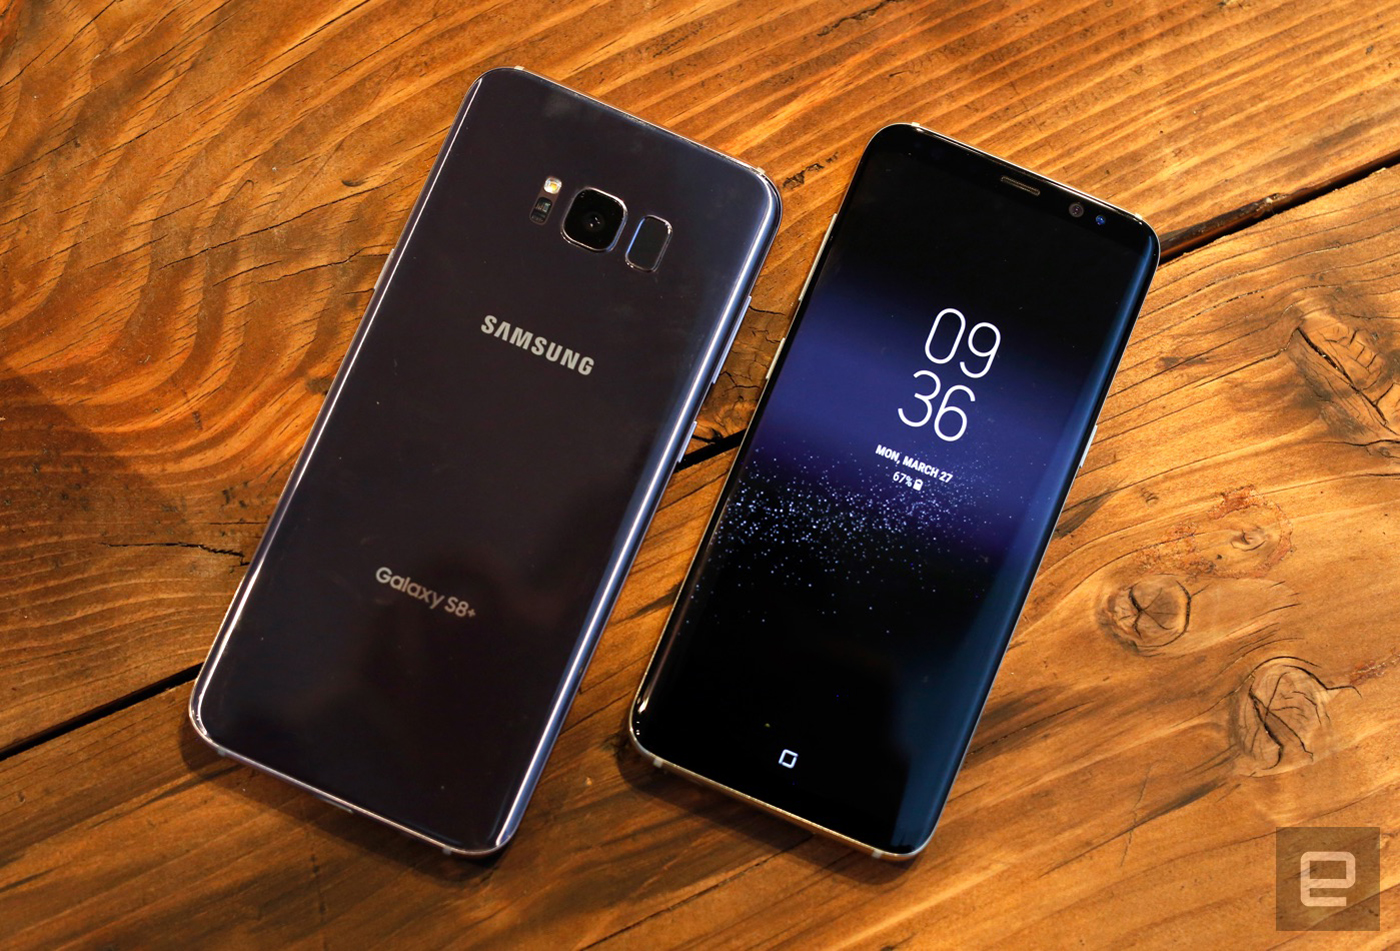 Samsung's Galaxy S8 is the